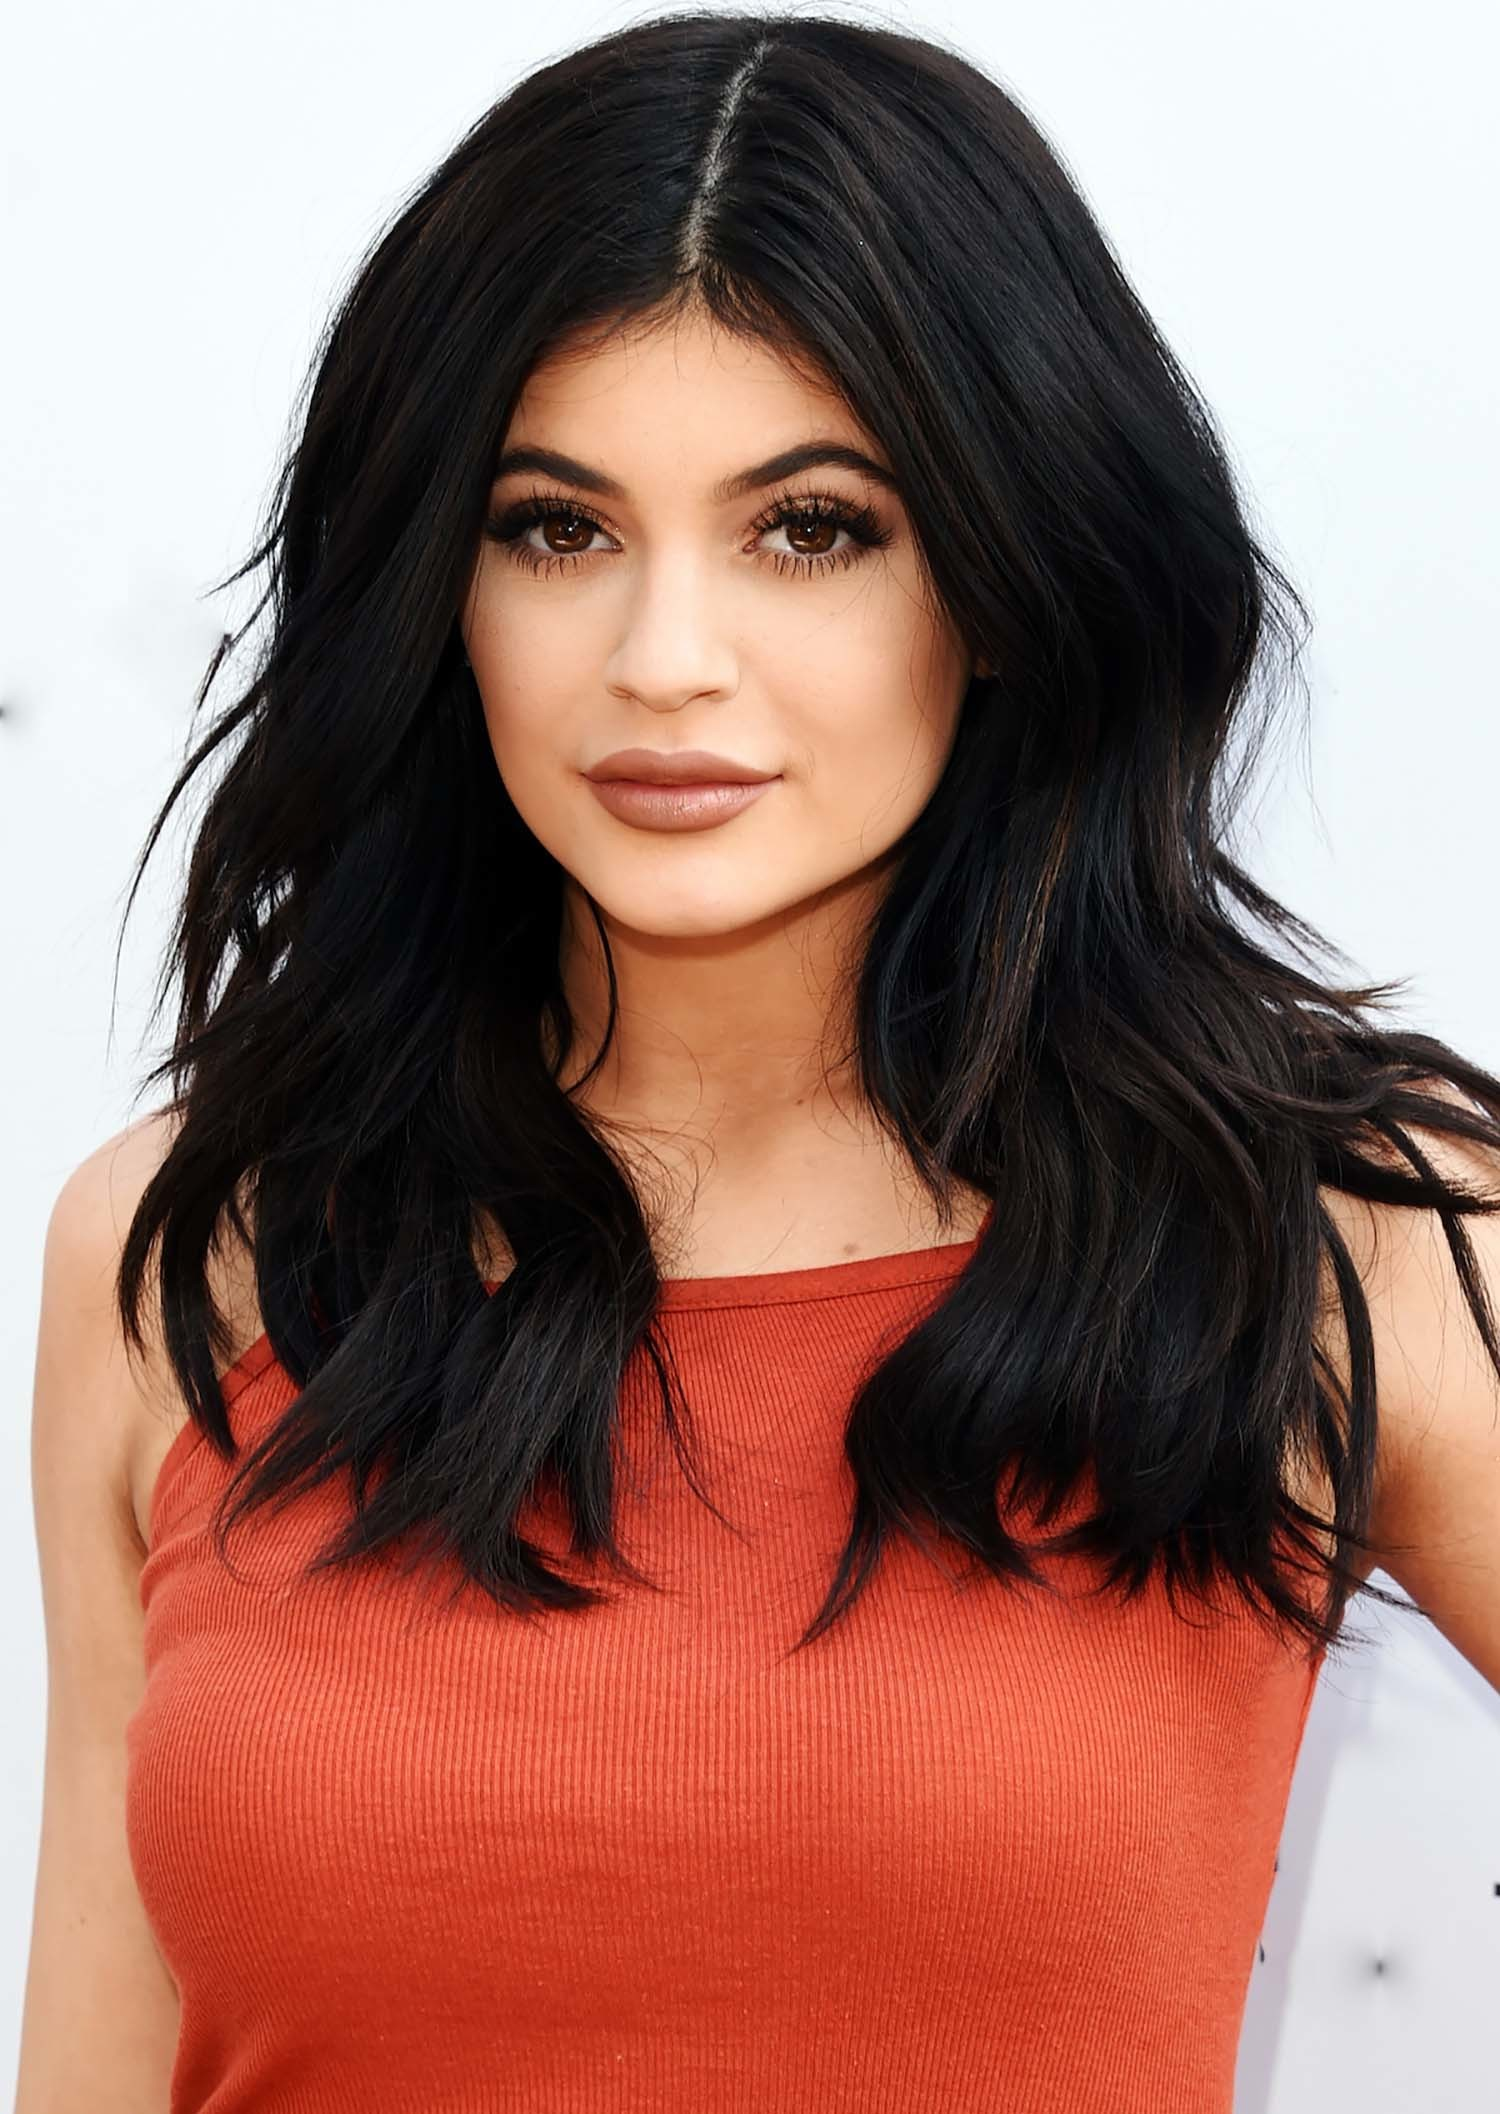 Kylie Jenner Wallpapers ·①